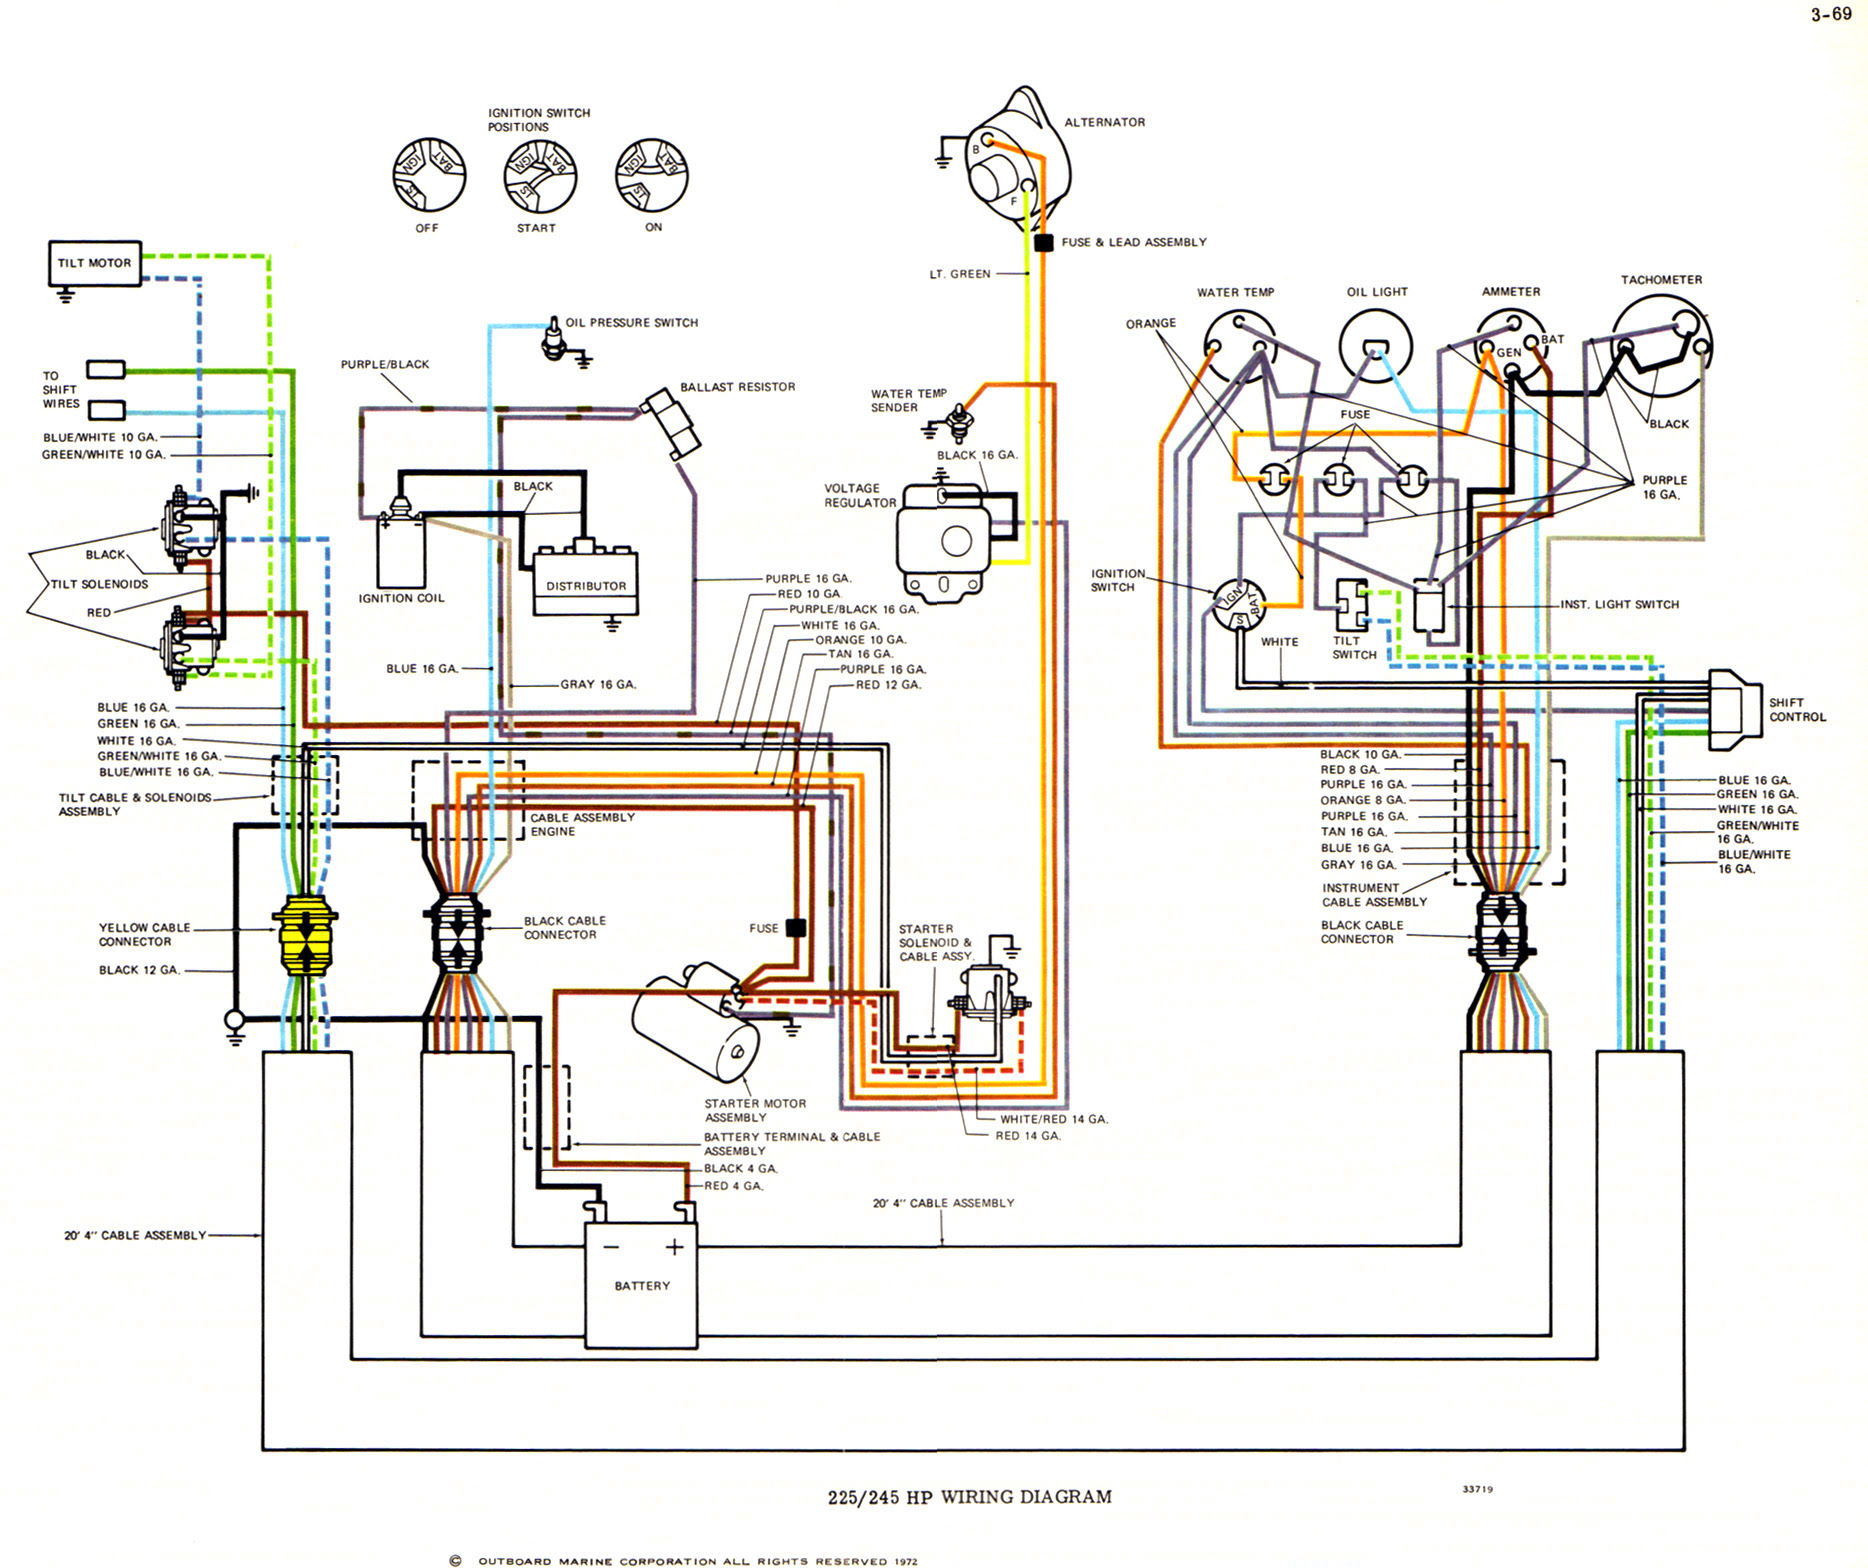 Diagram Cobra Omc Wiring Diagram Full Version Hd Quality Wiring Diagram Acewiring19 Newsetvlucera It